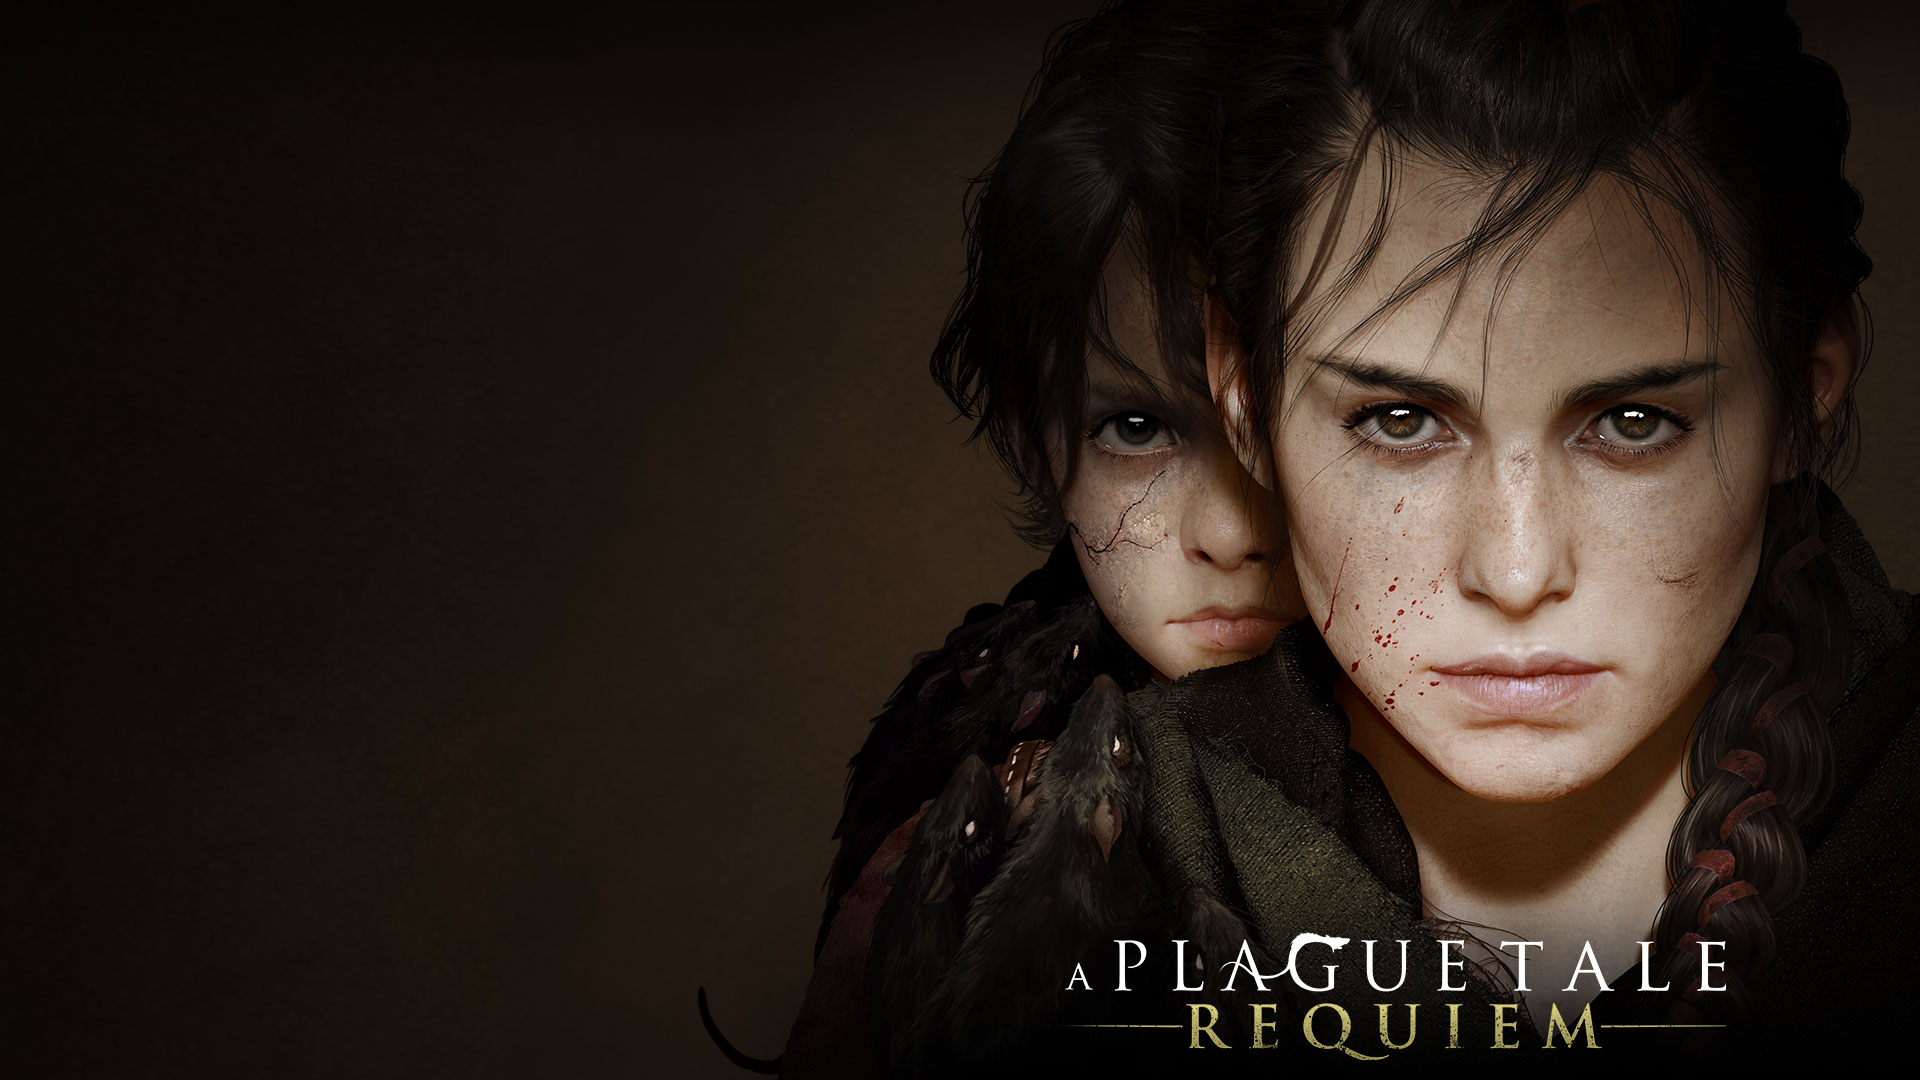 A Plague Tale: Requiem, Amicia stands in front of her brother Hugo.